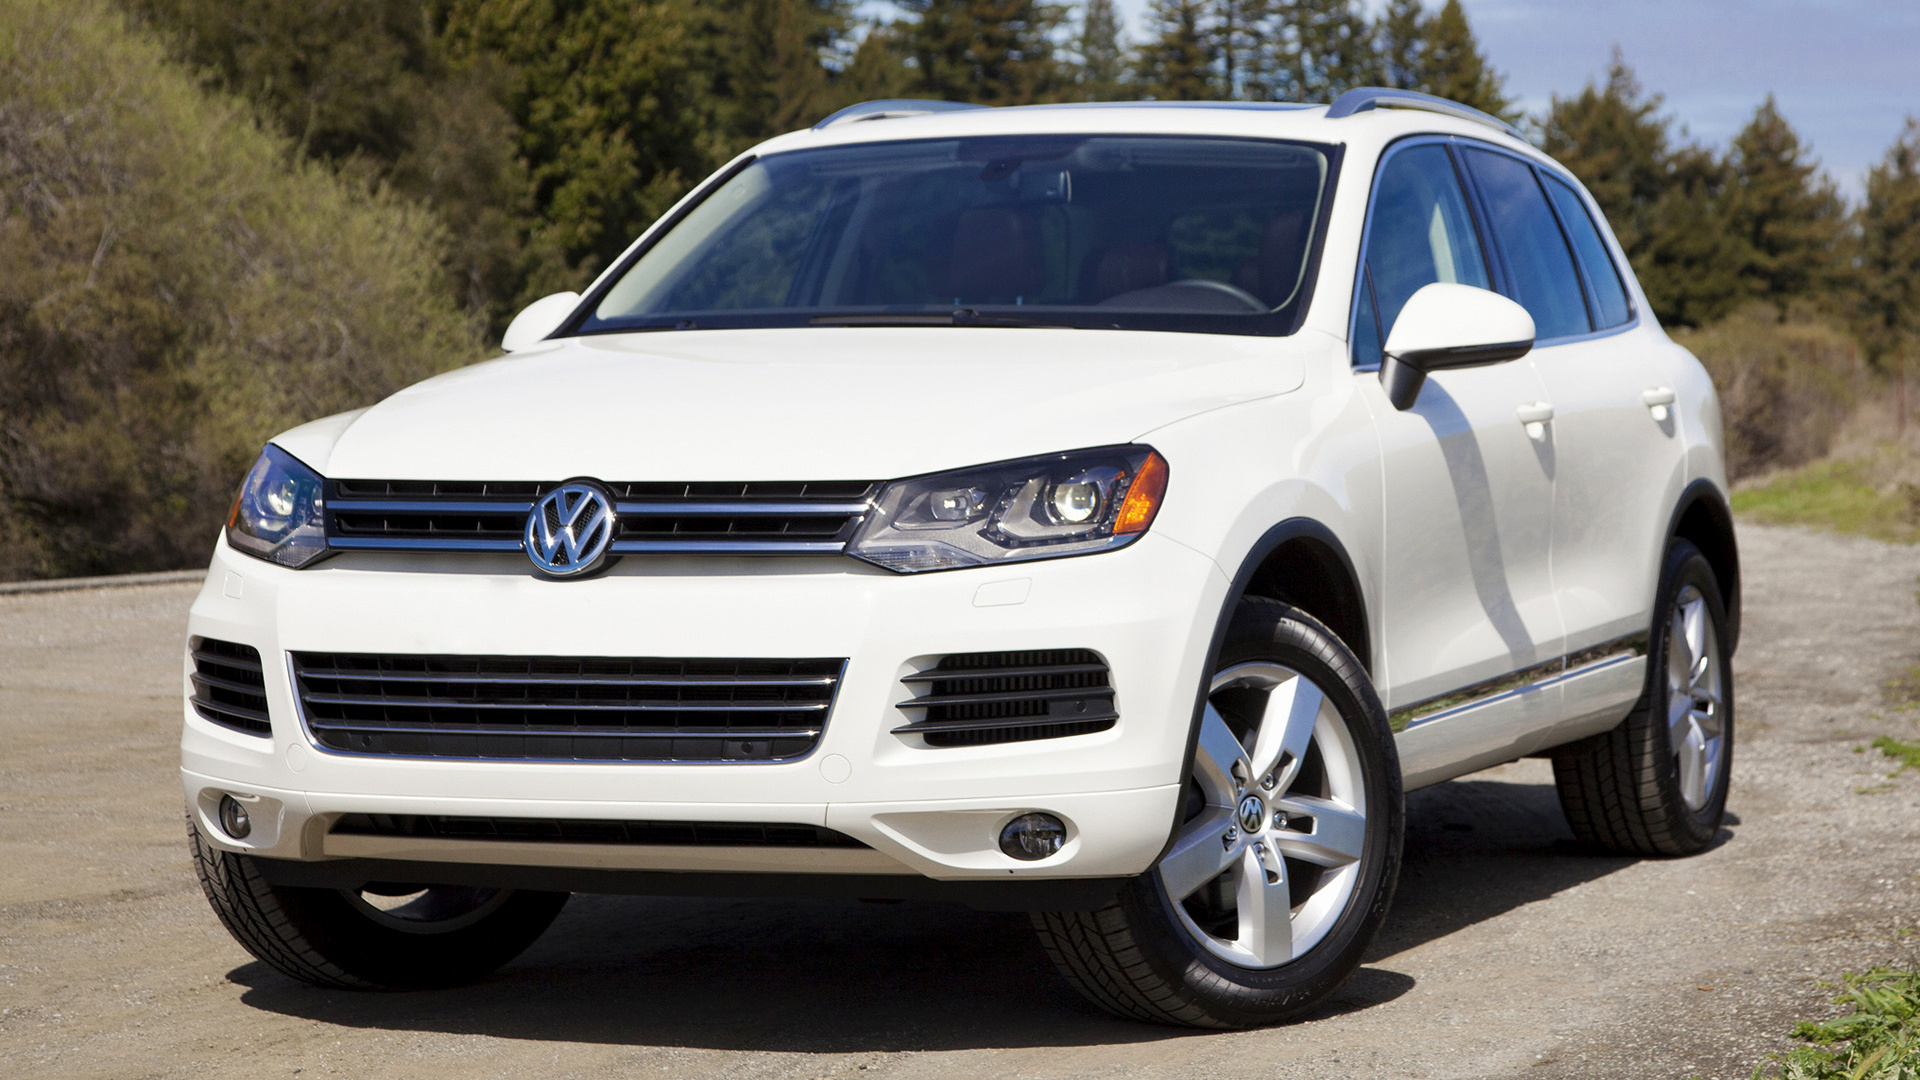 volkswagen touareg 2010 us wallpapers and hd images. Black Bedroom Furniture Sets. Home Design Ideas